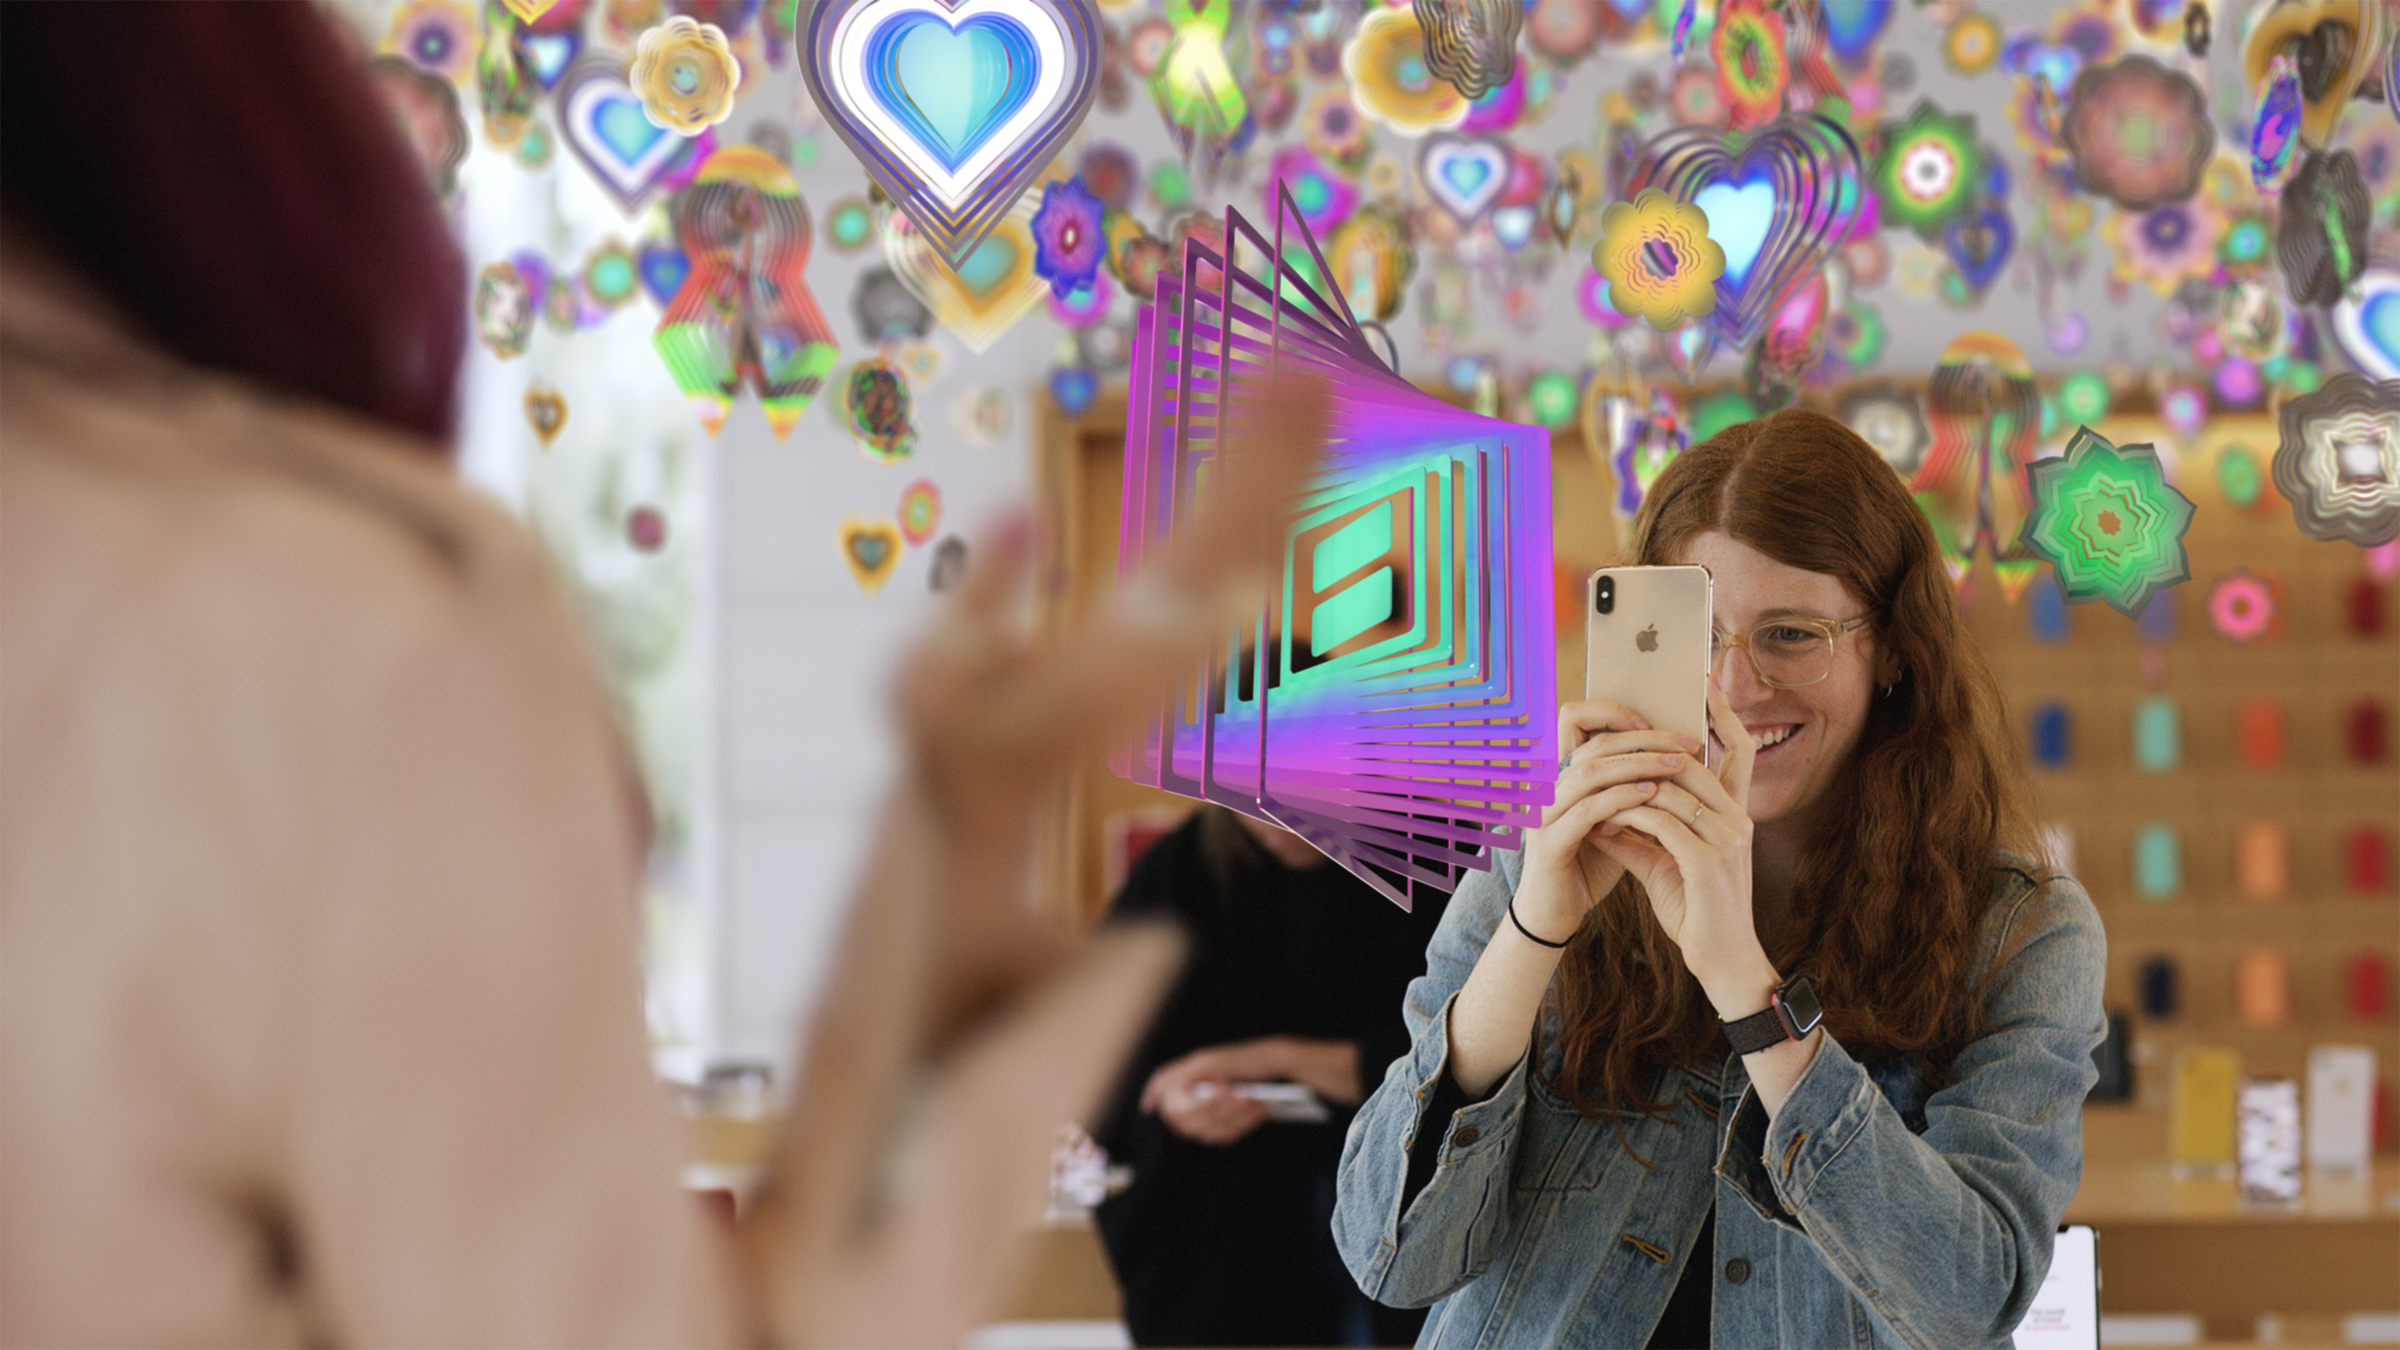 Holographic Displays for Apple's Augmented Reality (AR) Headset